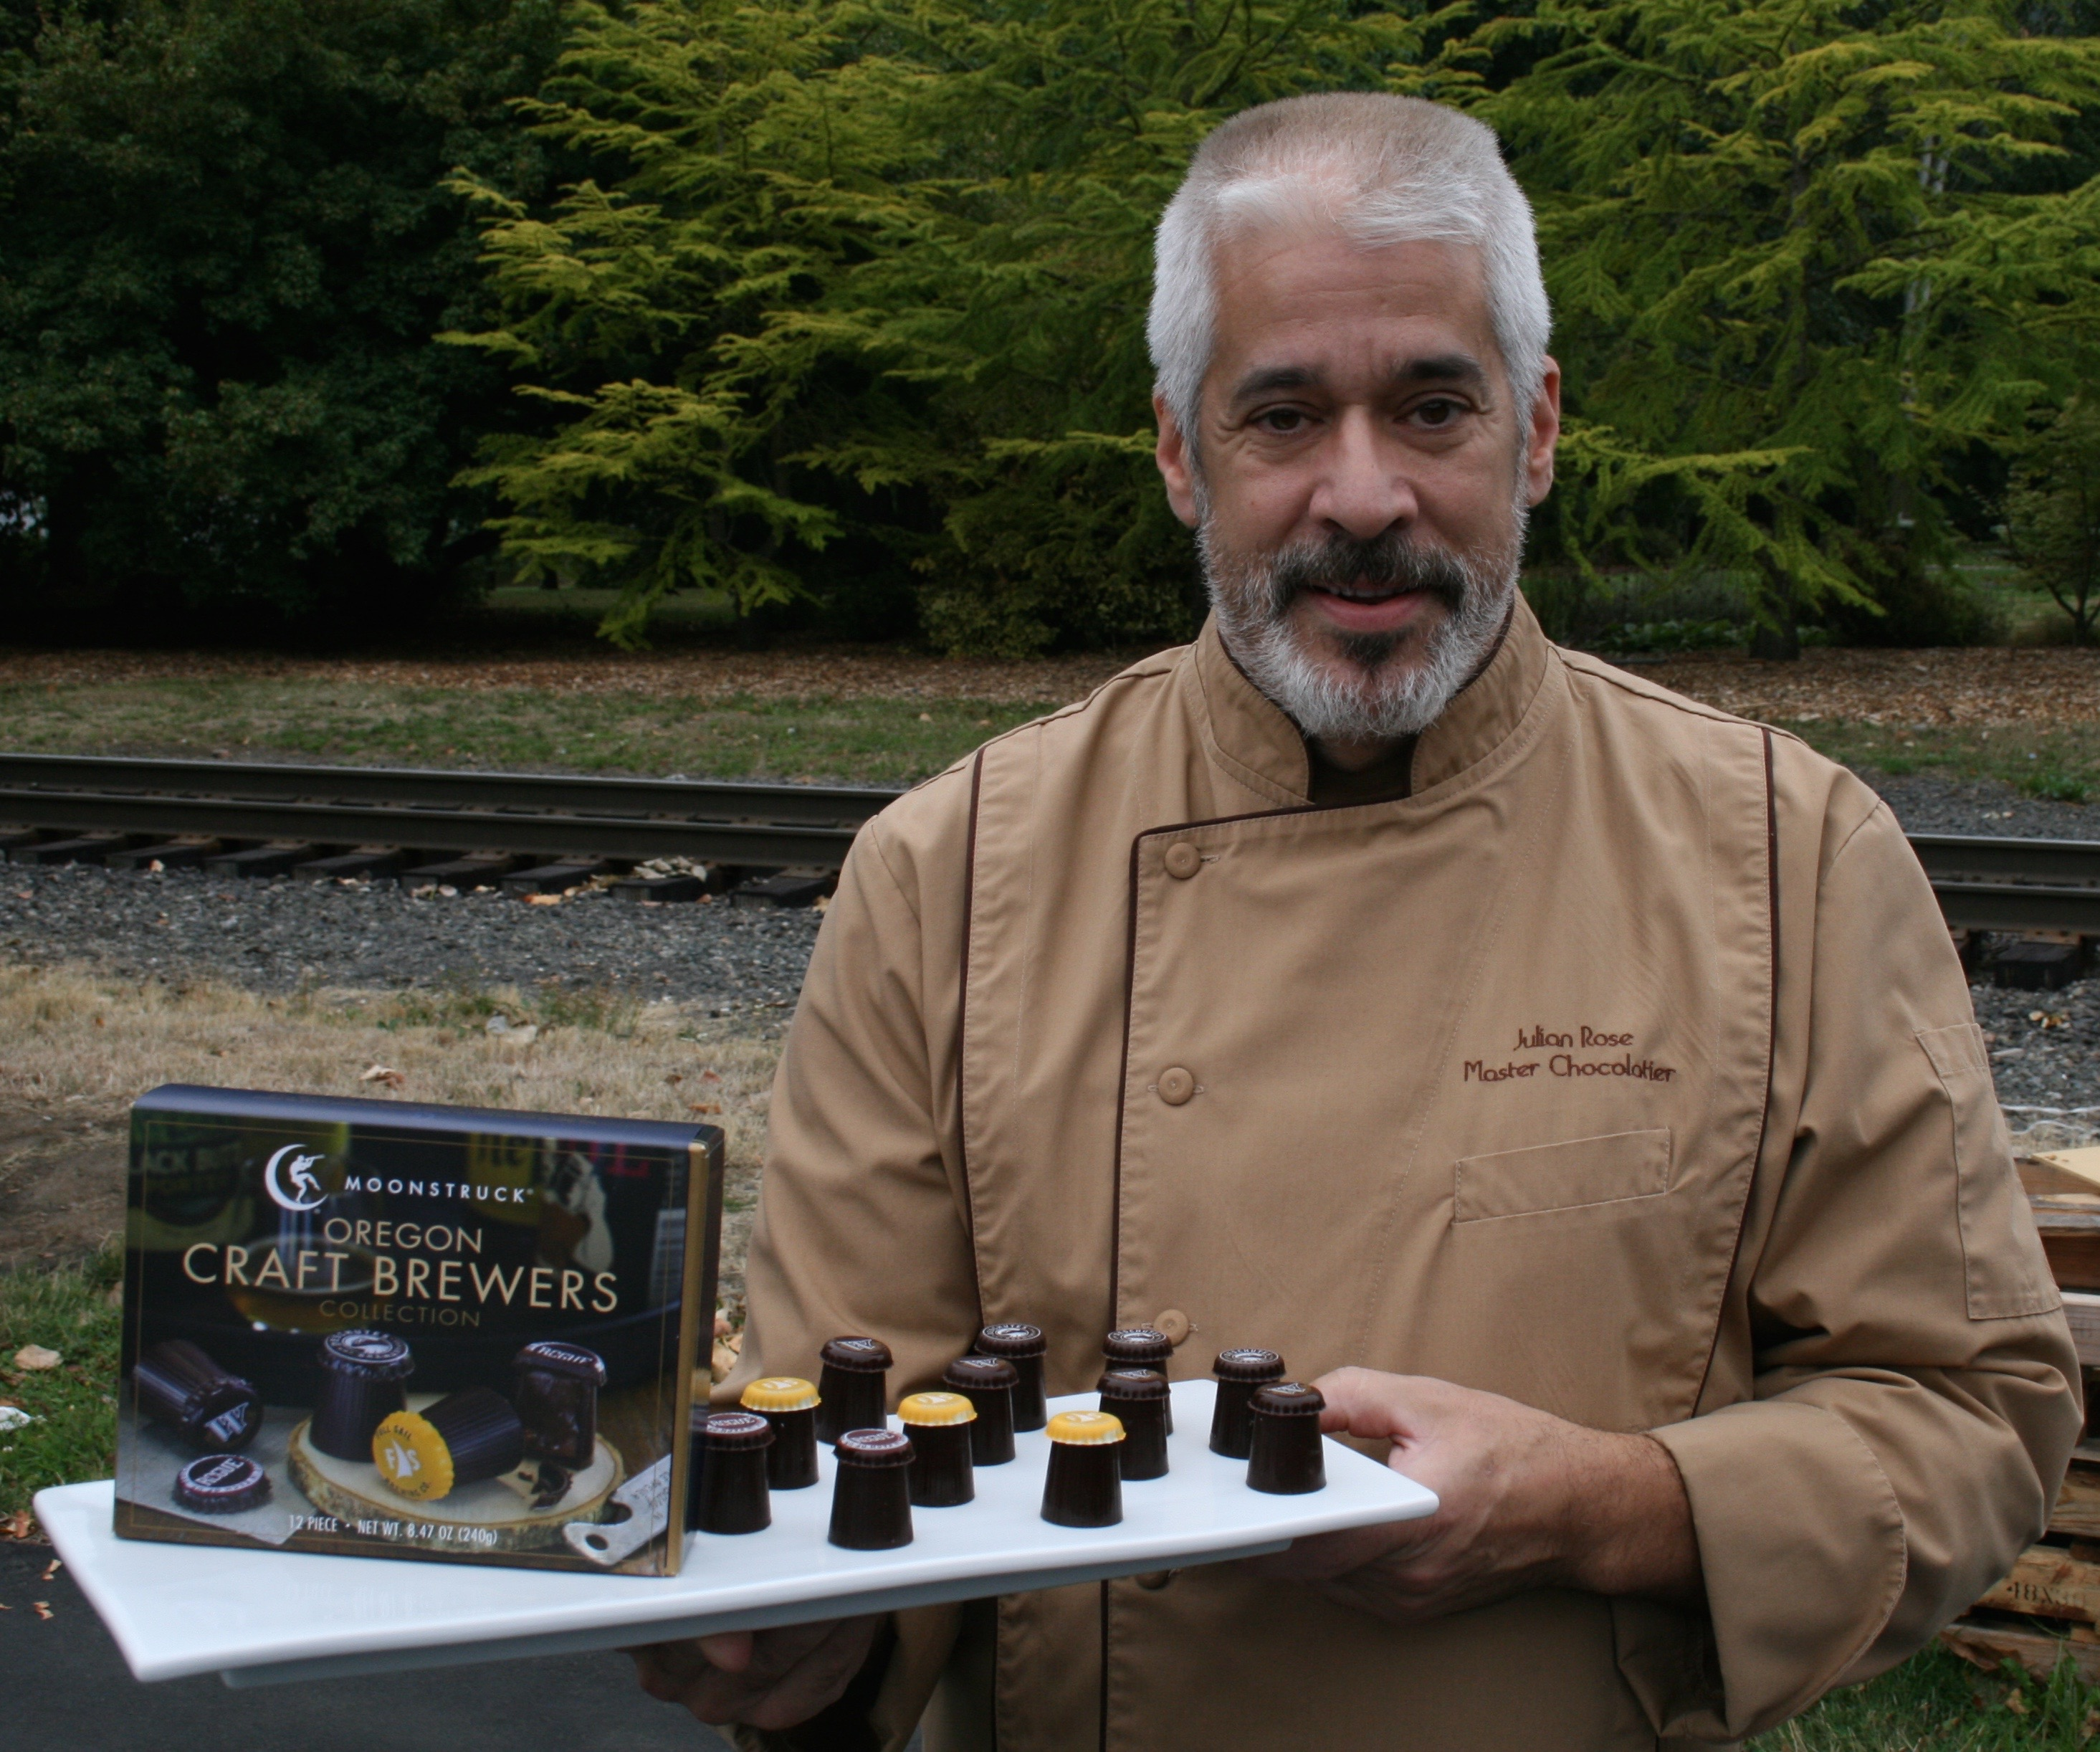 Julian Rose displaying his Moonstruck Chocolate Oregon Craft Brewers Collection Truffles. (photo by D.J. Paul)